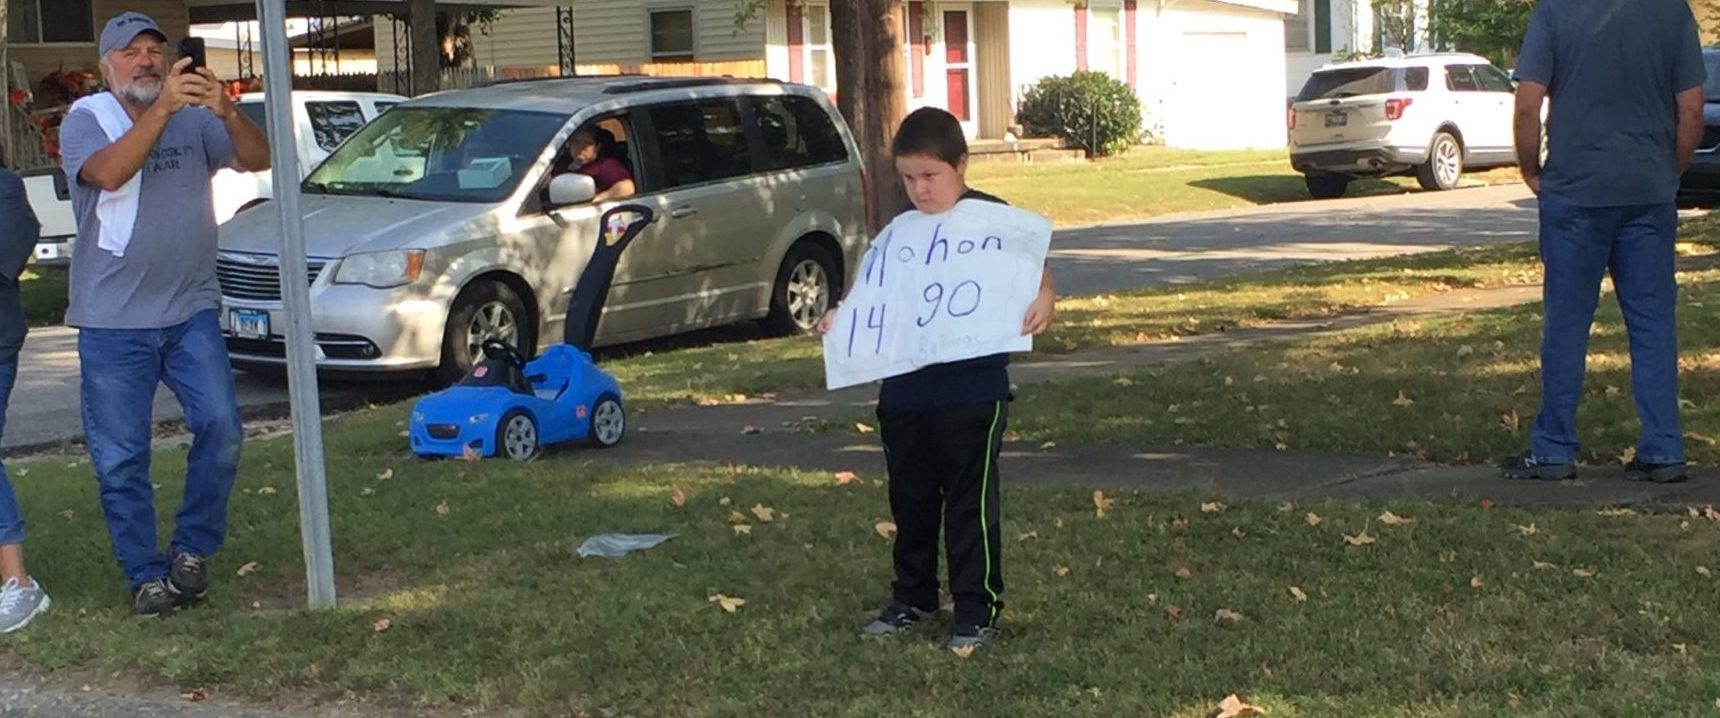 Act of Kindness - 6th Graders Do Good, too